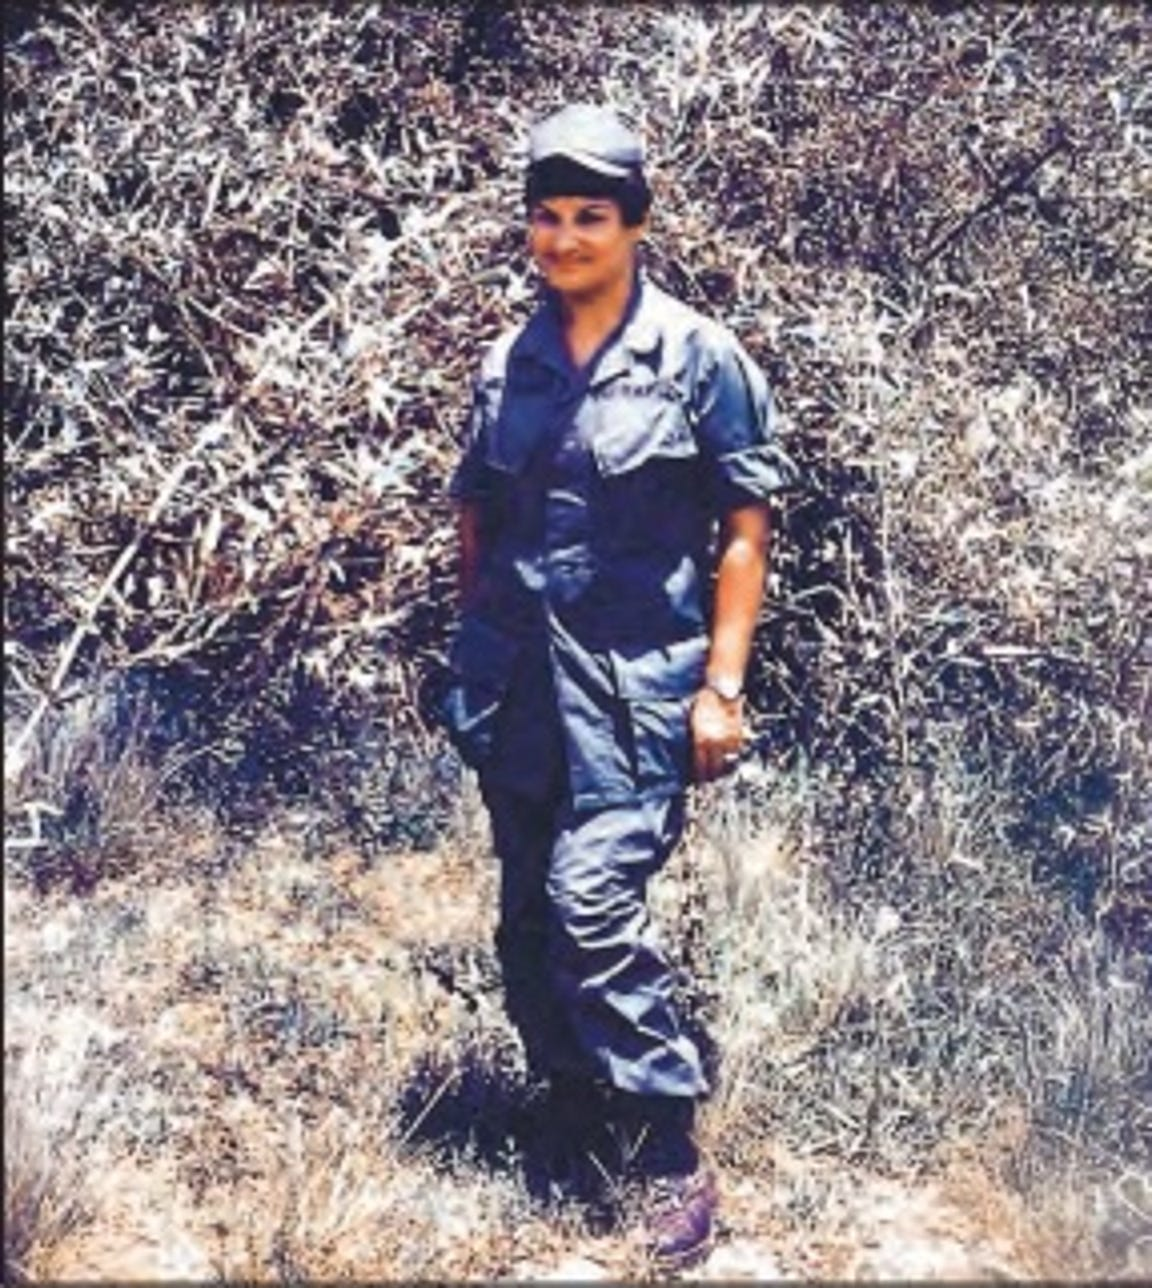 Frances Williams reported for duty in Long Binh, Vietnam in 1967, just weeks before the Tet offensive.